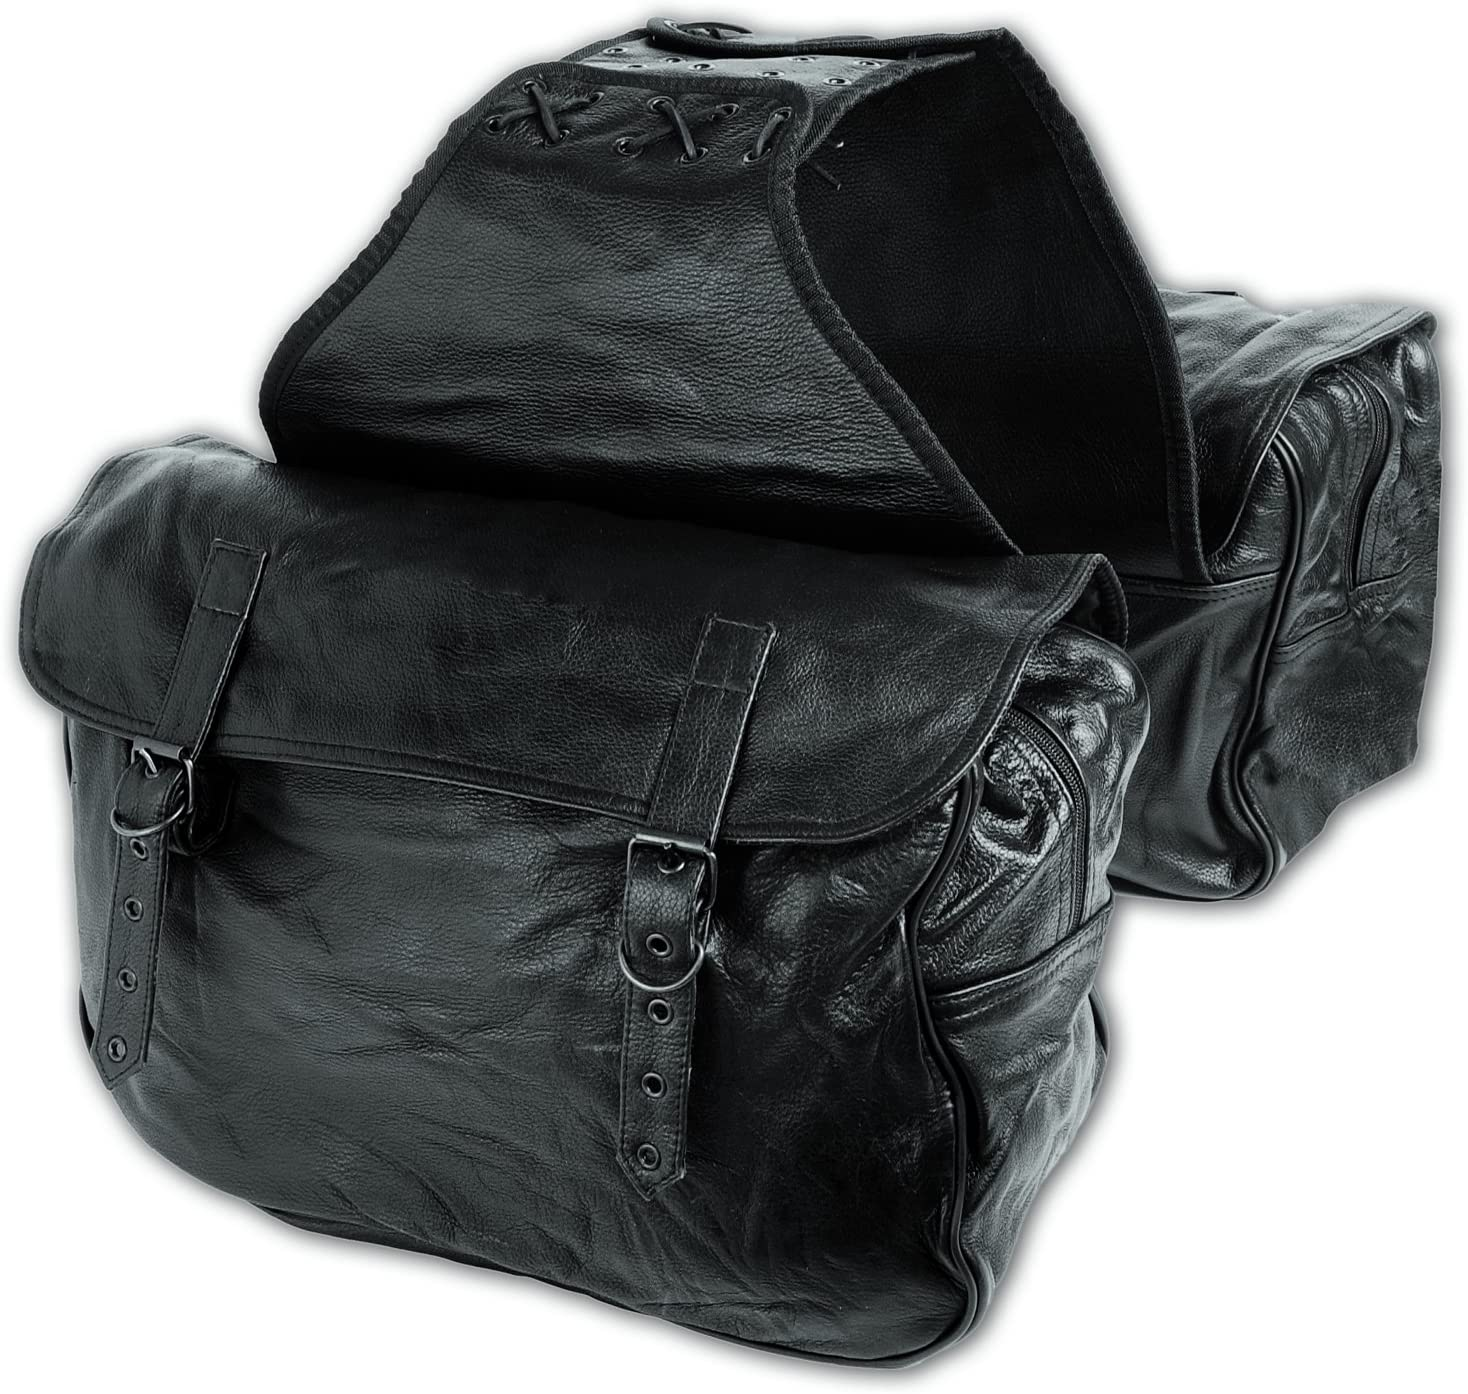 Black Cruiser Style Motorcycle Saddlebags Motorbike Throw Over Panniers Luggage